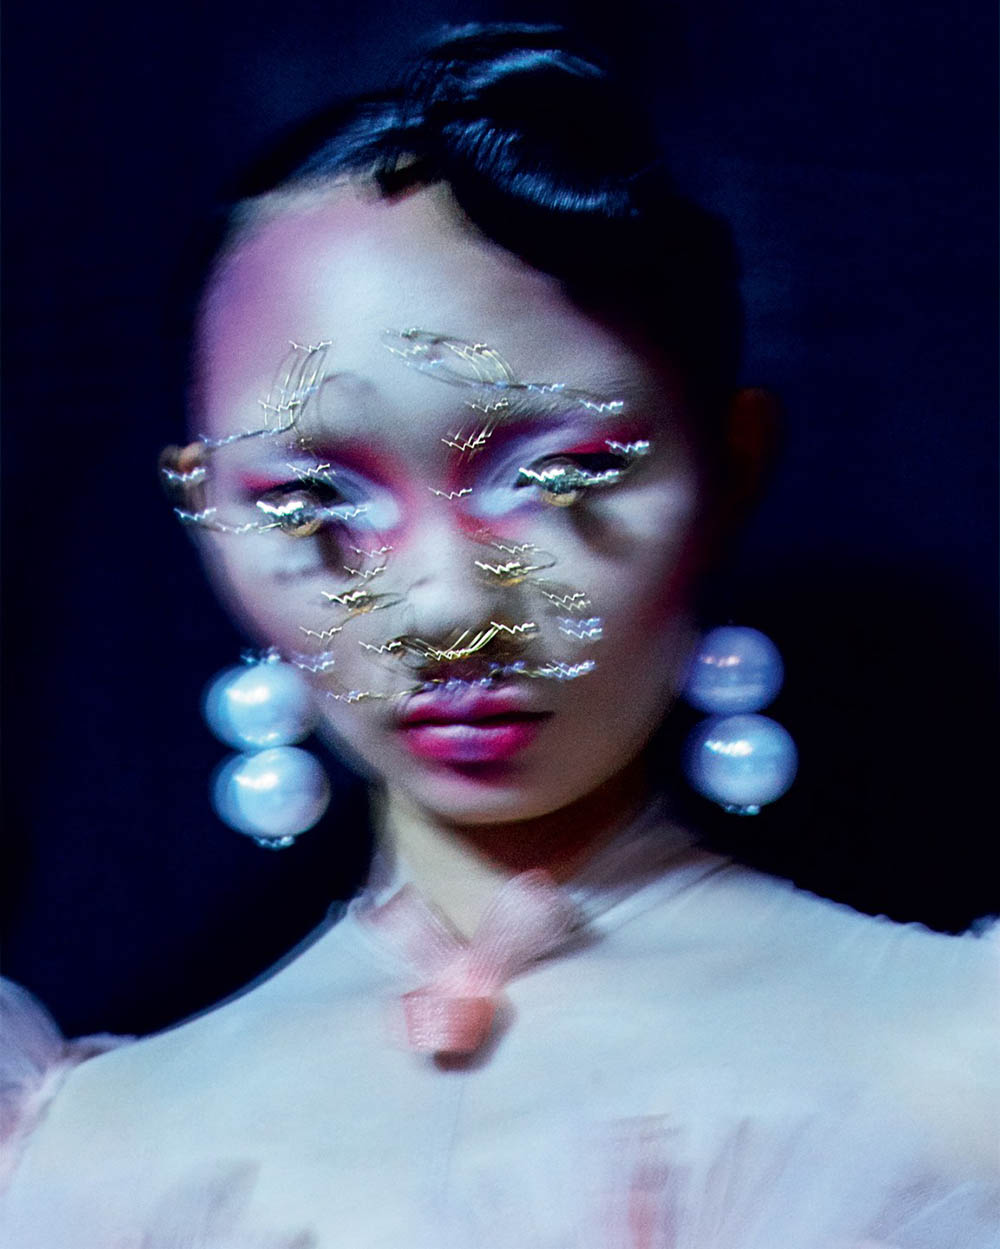 Ling Ling and Xie Chaoyu by Tim Walker for Vogue Italia November 2018